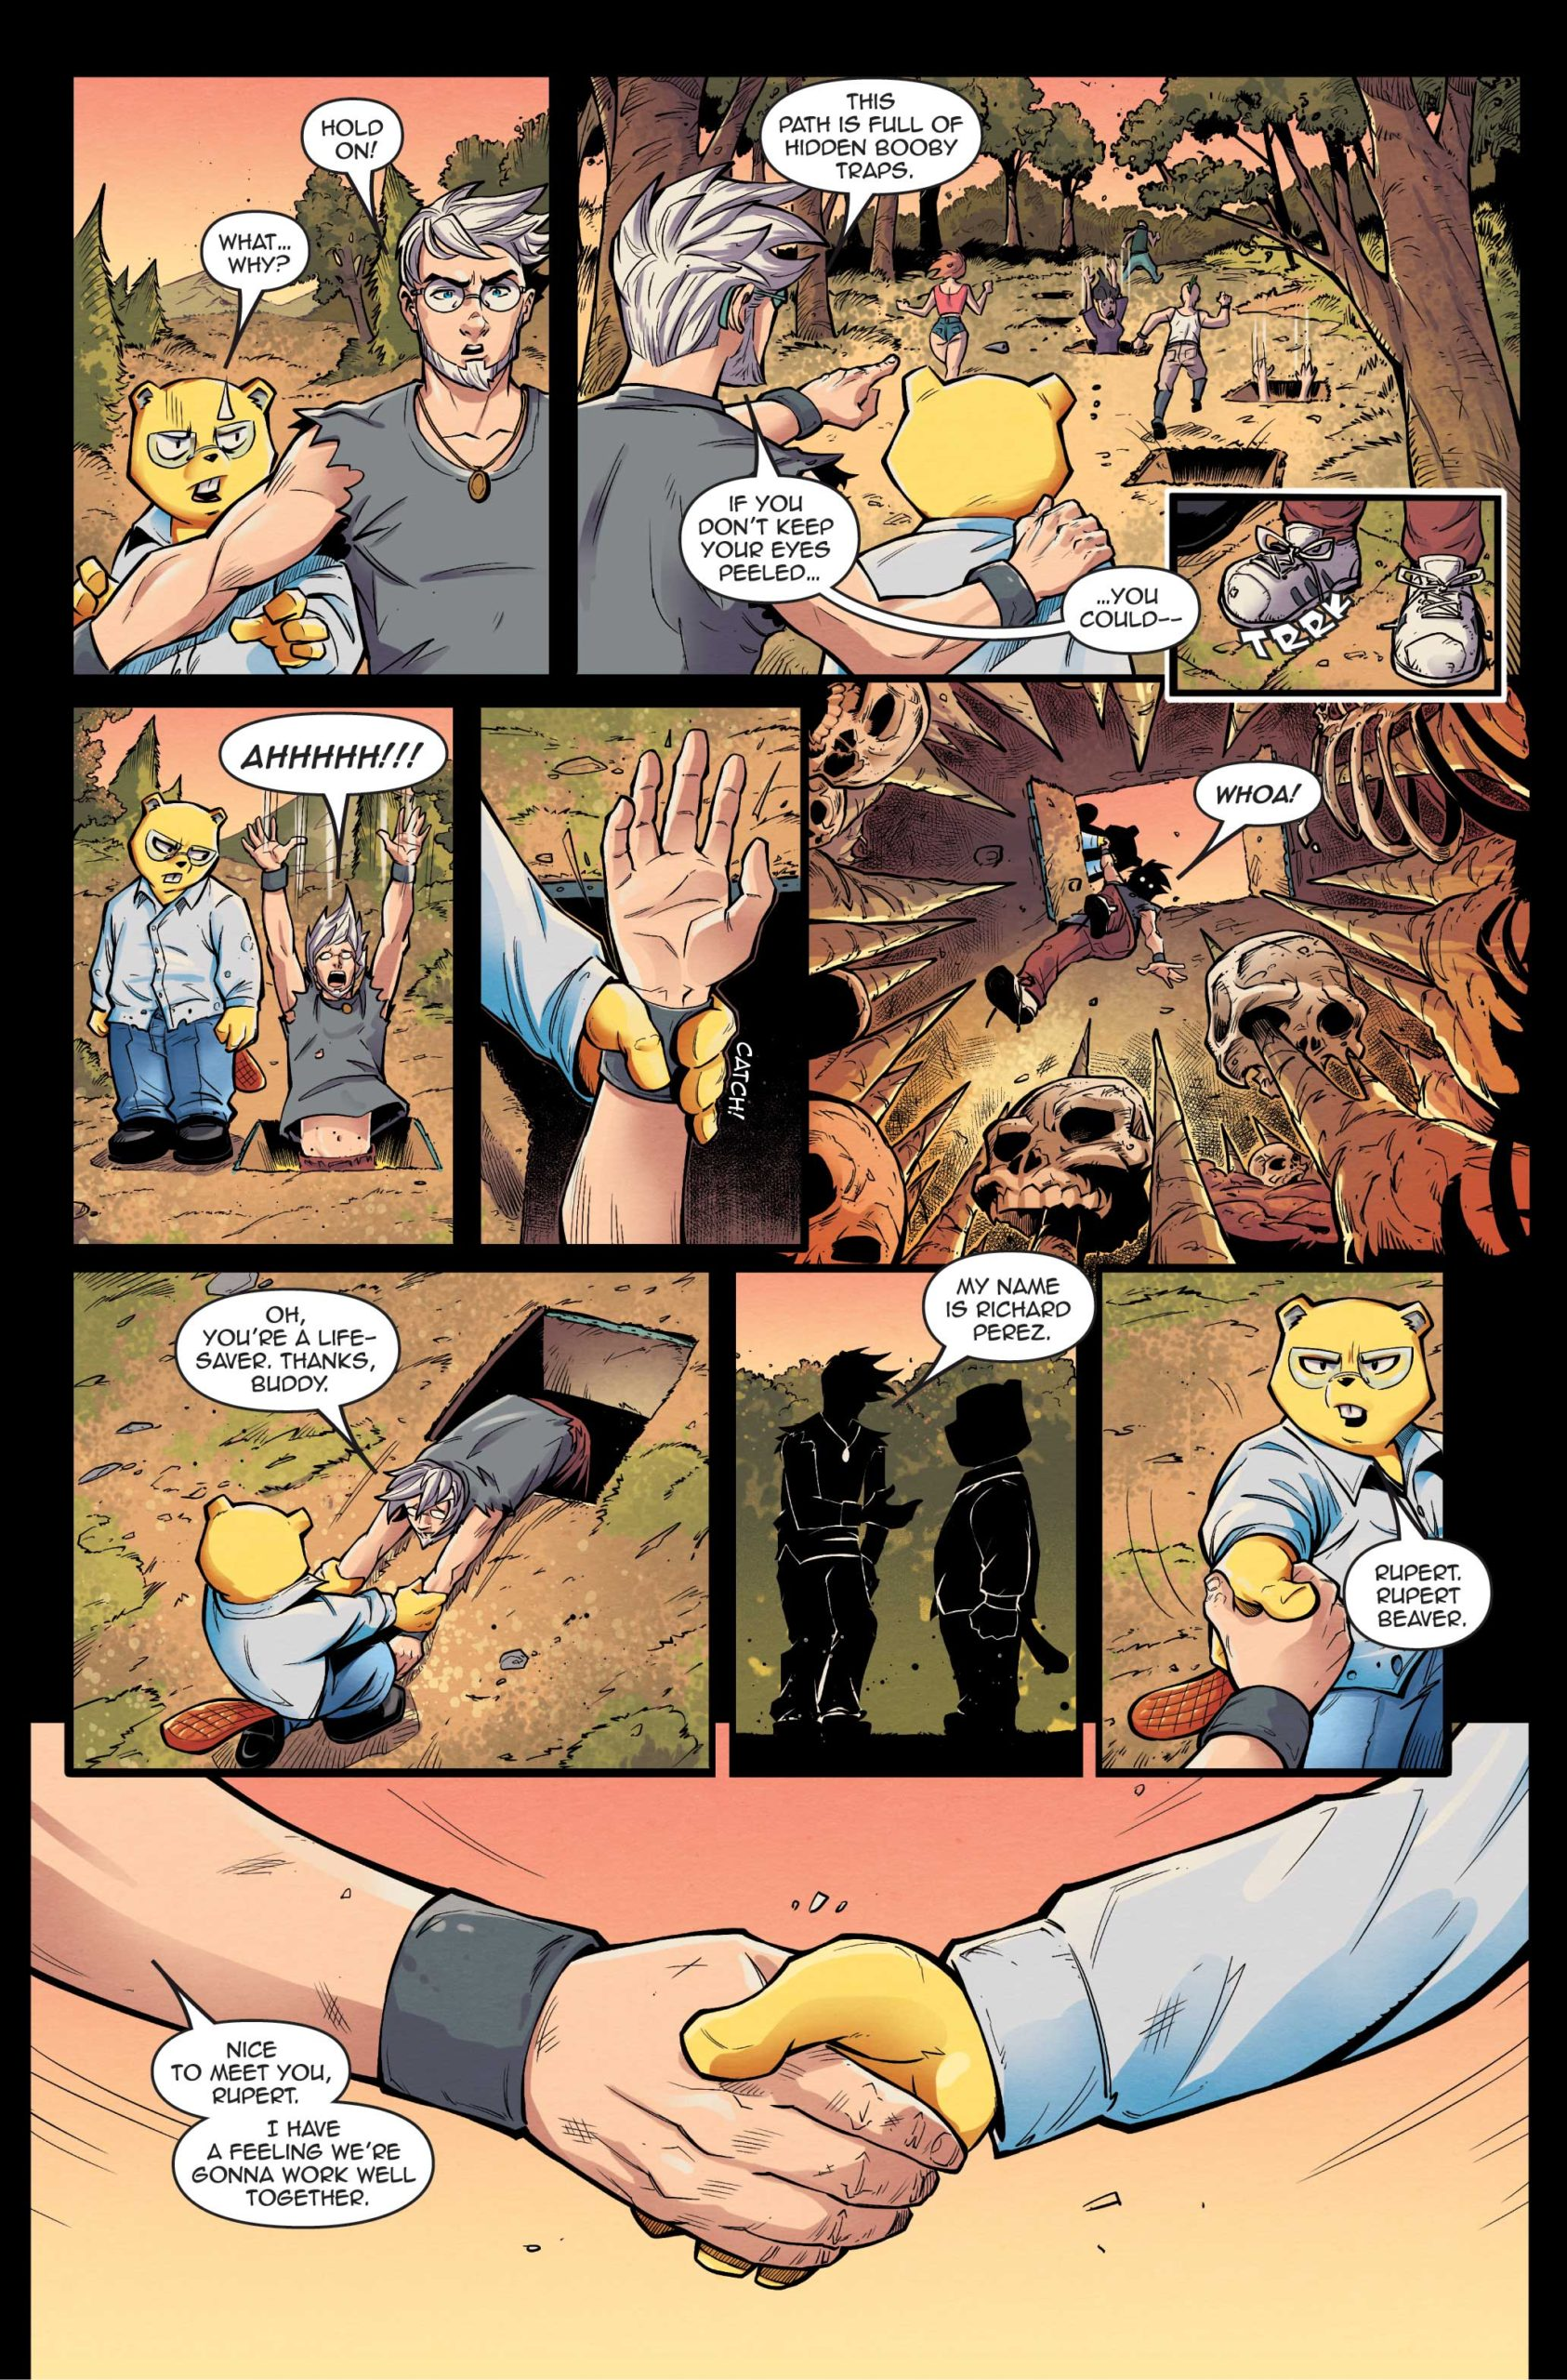 Preview] Mr. Beaver #2 — Major Spoilers — Comic Book Previews